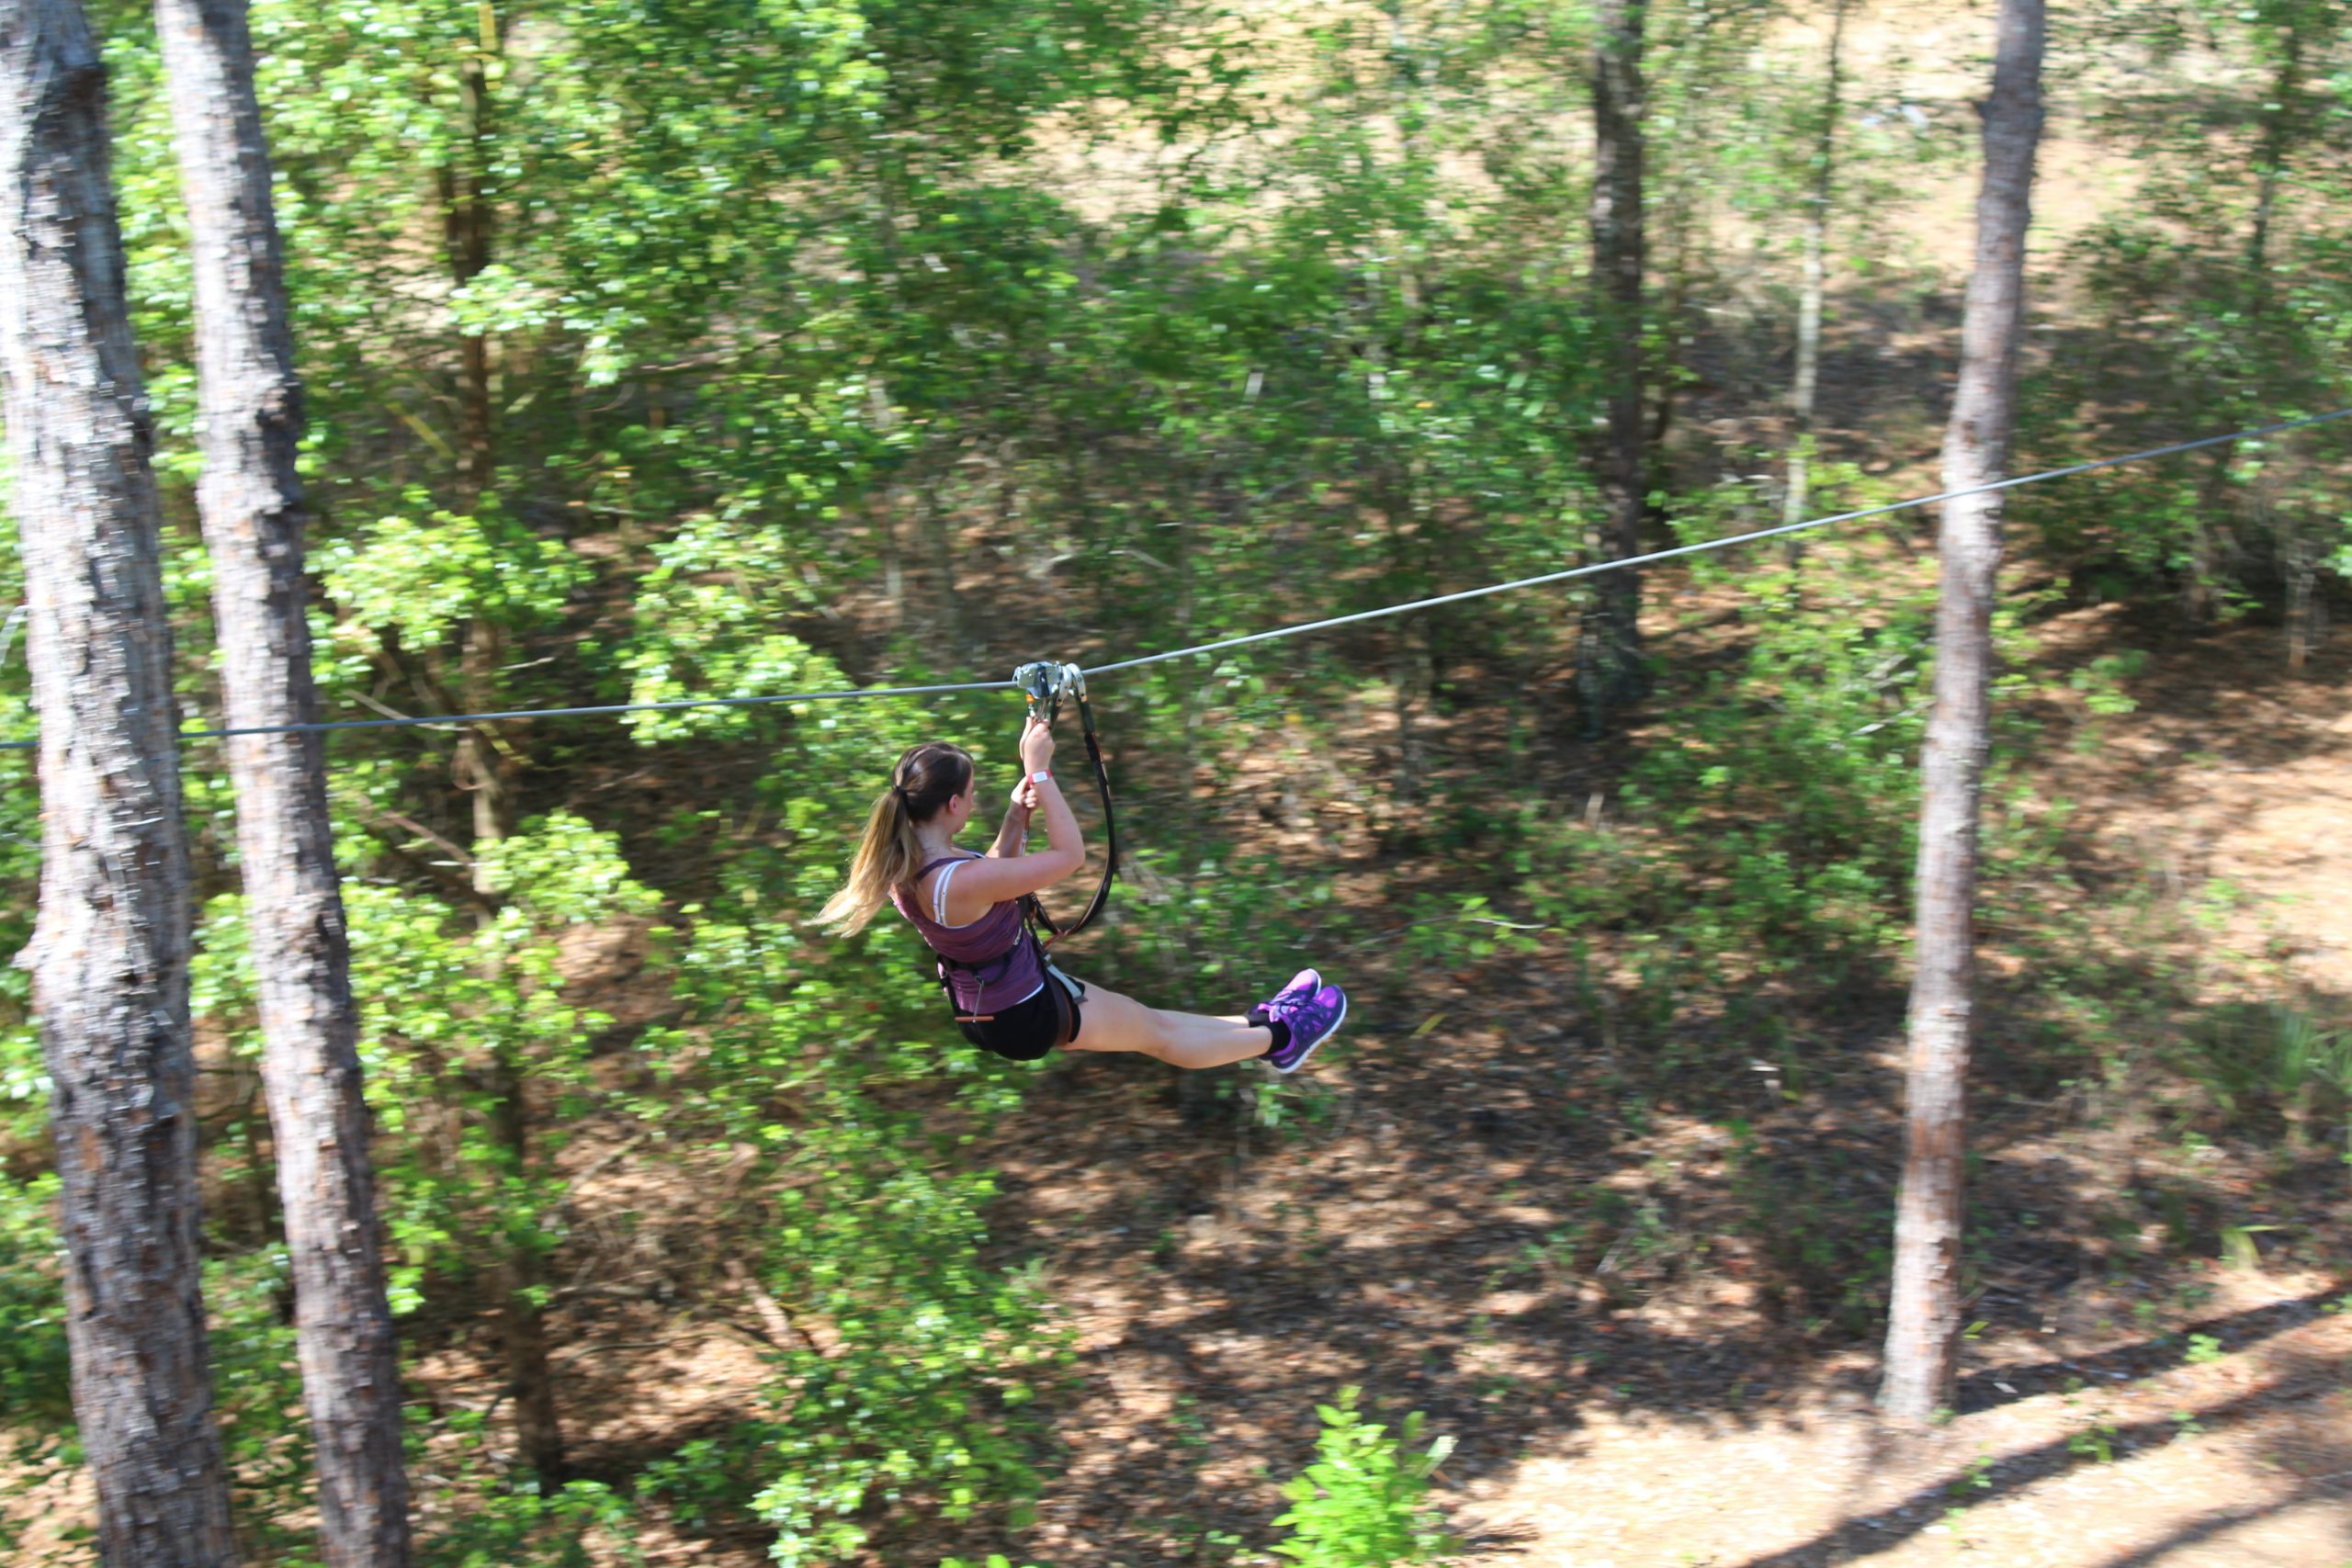 A guest is scene zip lining in Florida.